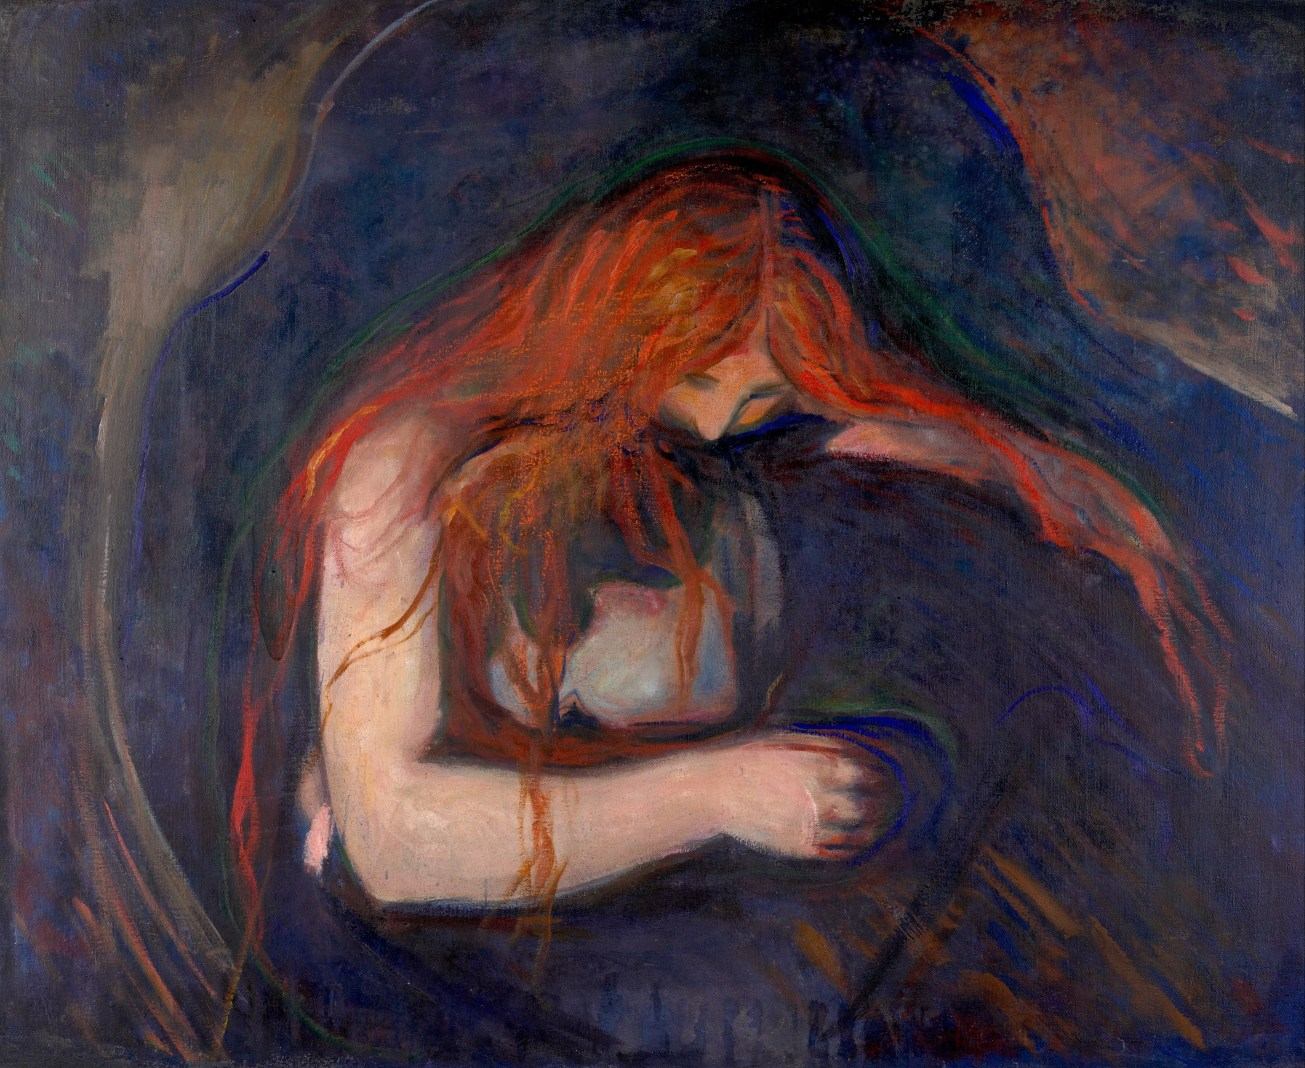 Edvard_Munch_-_Vampire_(1895)_-_Google_Art_Project